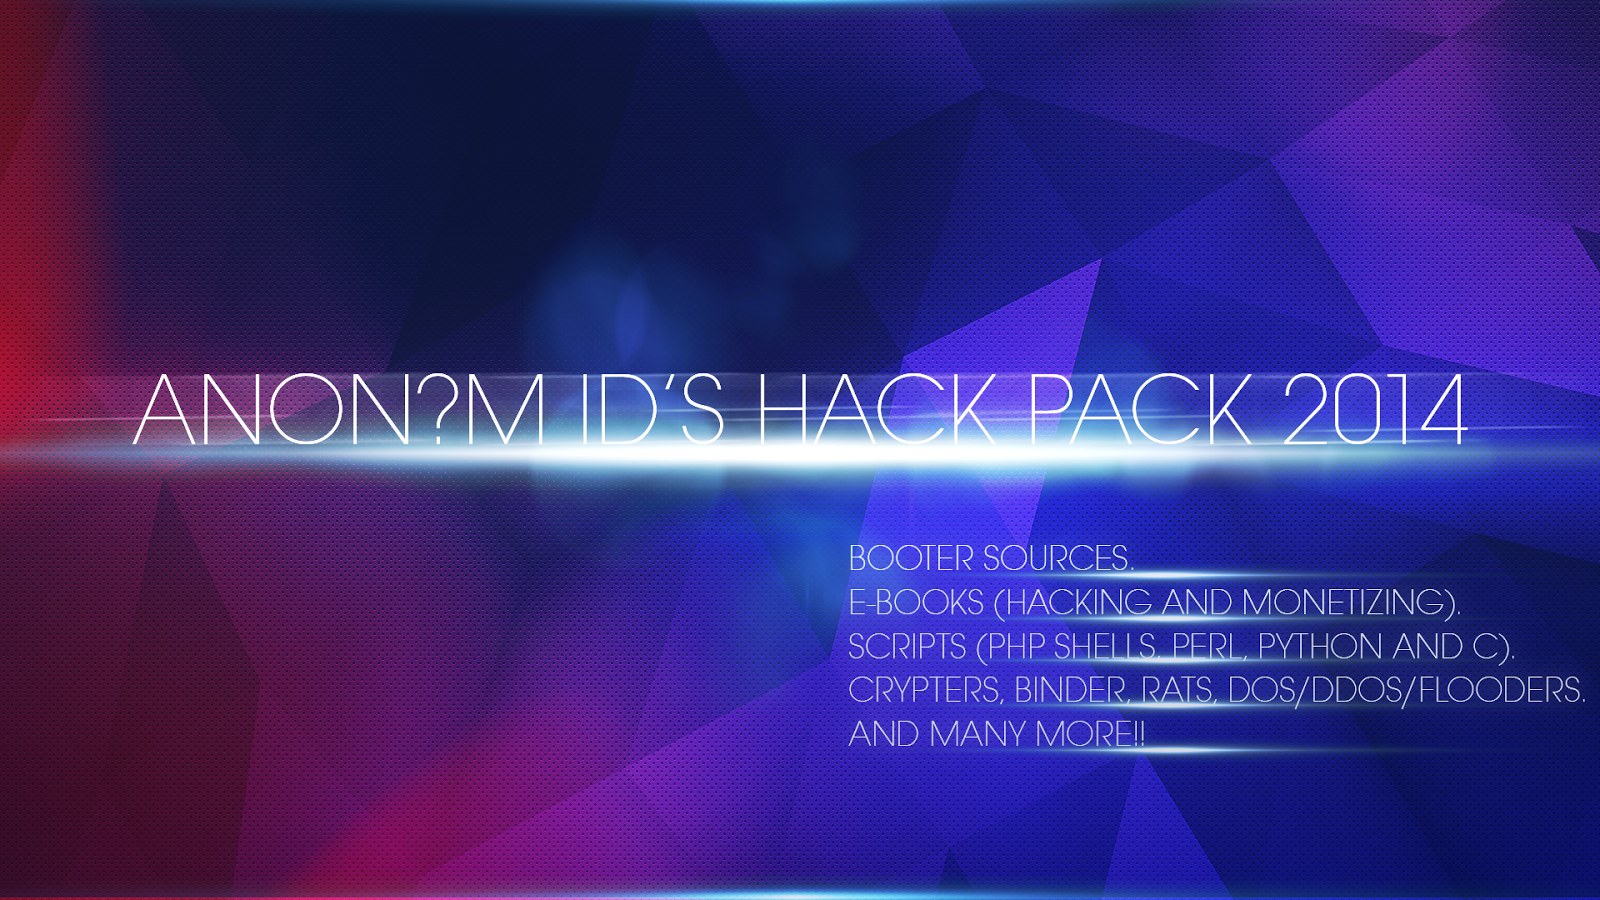 Libro Hacking Pack Hack Libros Chico Descarga